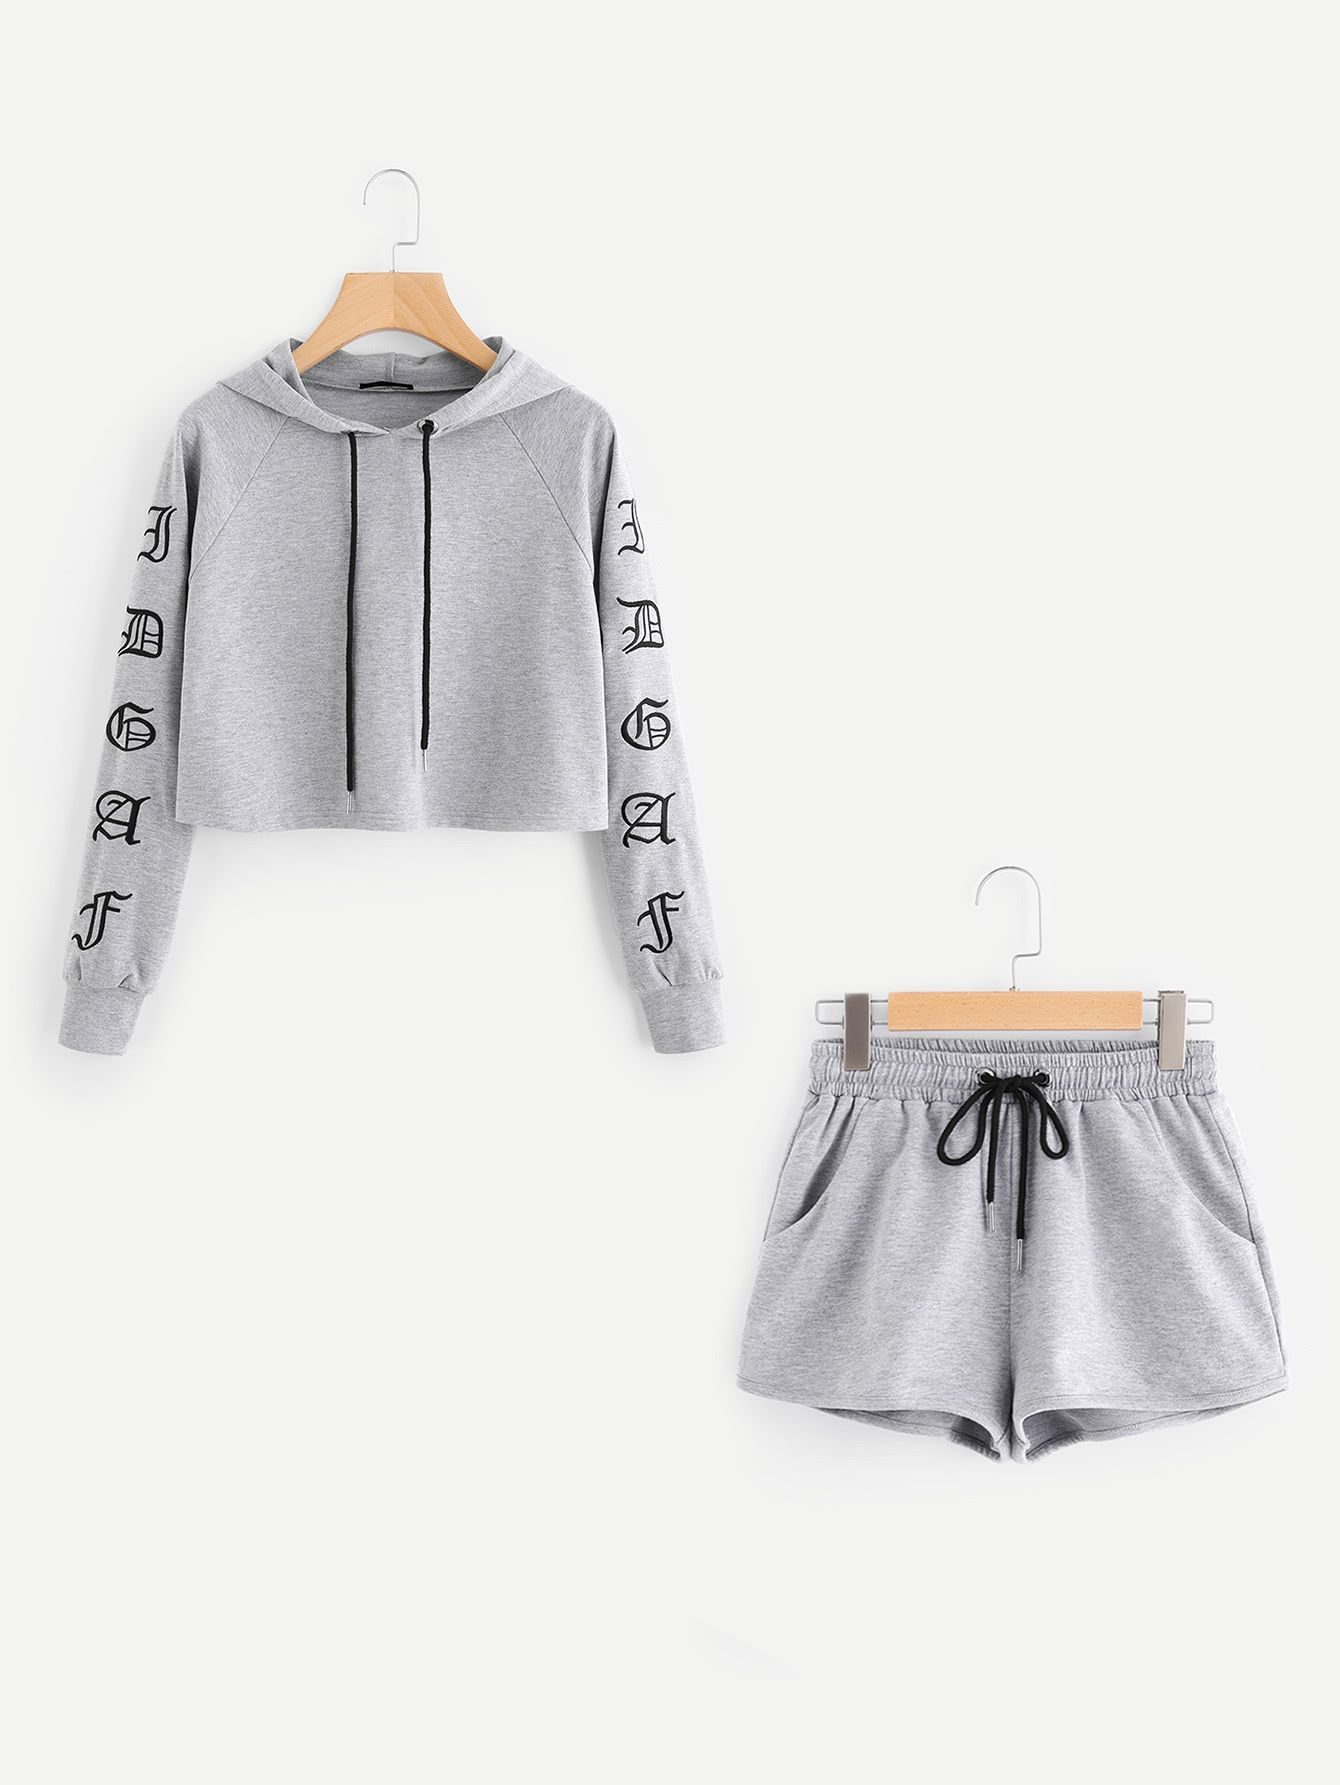 082ed38fa Shop Heather Knit Crop Hoodie & Shorts Set online. SheIn offers Heather  Knit Crop Hoodie & Shorts Set & more to fit your fashionable needs.